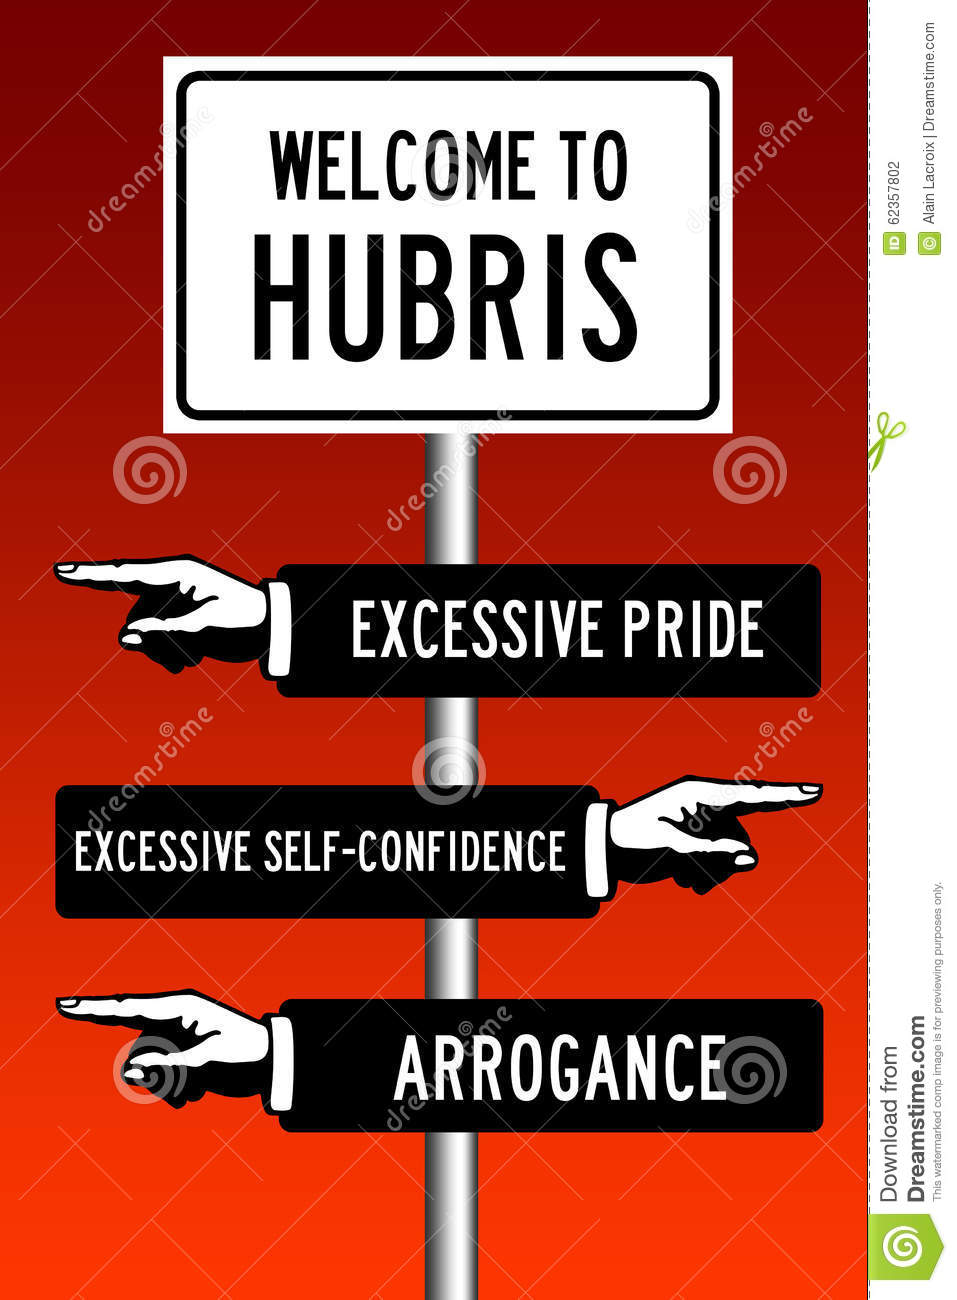 excessive pride The bible got it wrong pride only goes before a fall when it's hubris -- excessive pride that veers into self-aggrandizement and conceit but otherwise, this emotion is fundamental to humans and healthy self-esteem, says psychology professor.